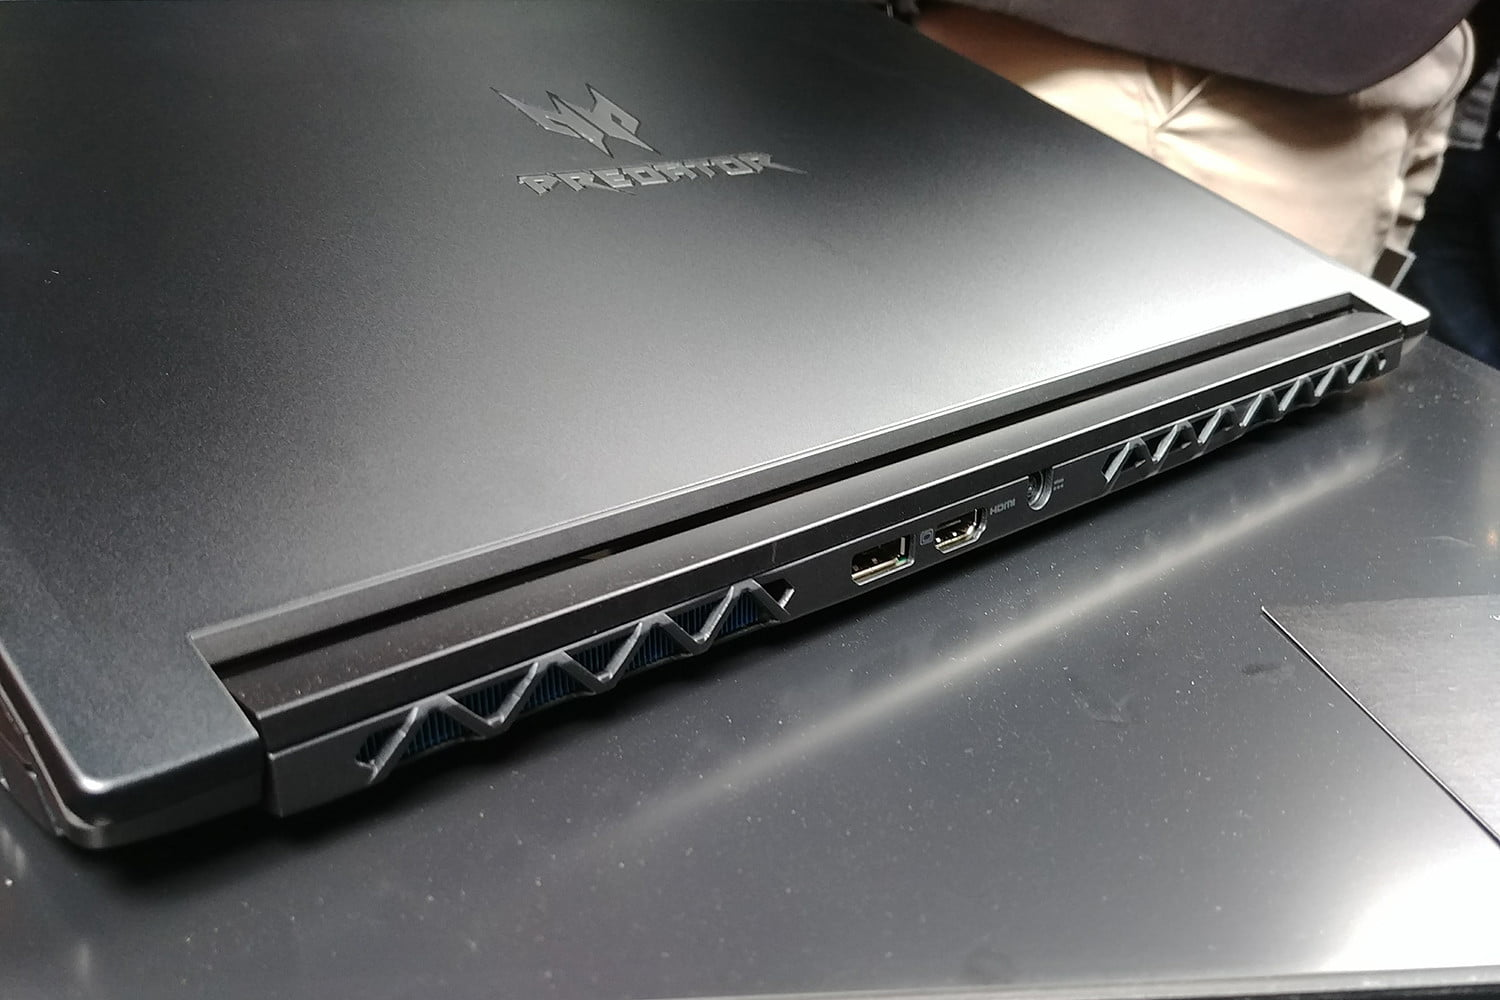 acer triton 700 hands on review 20170427 122413